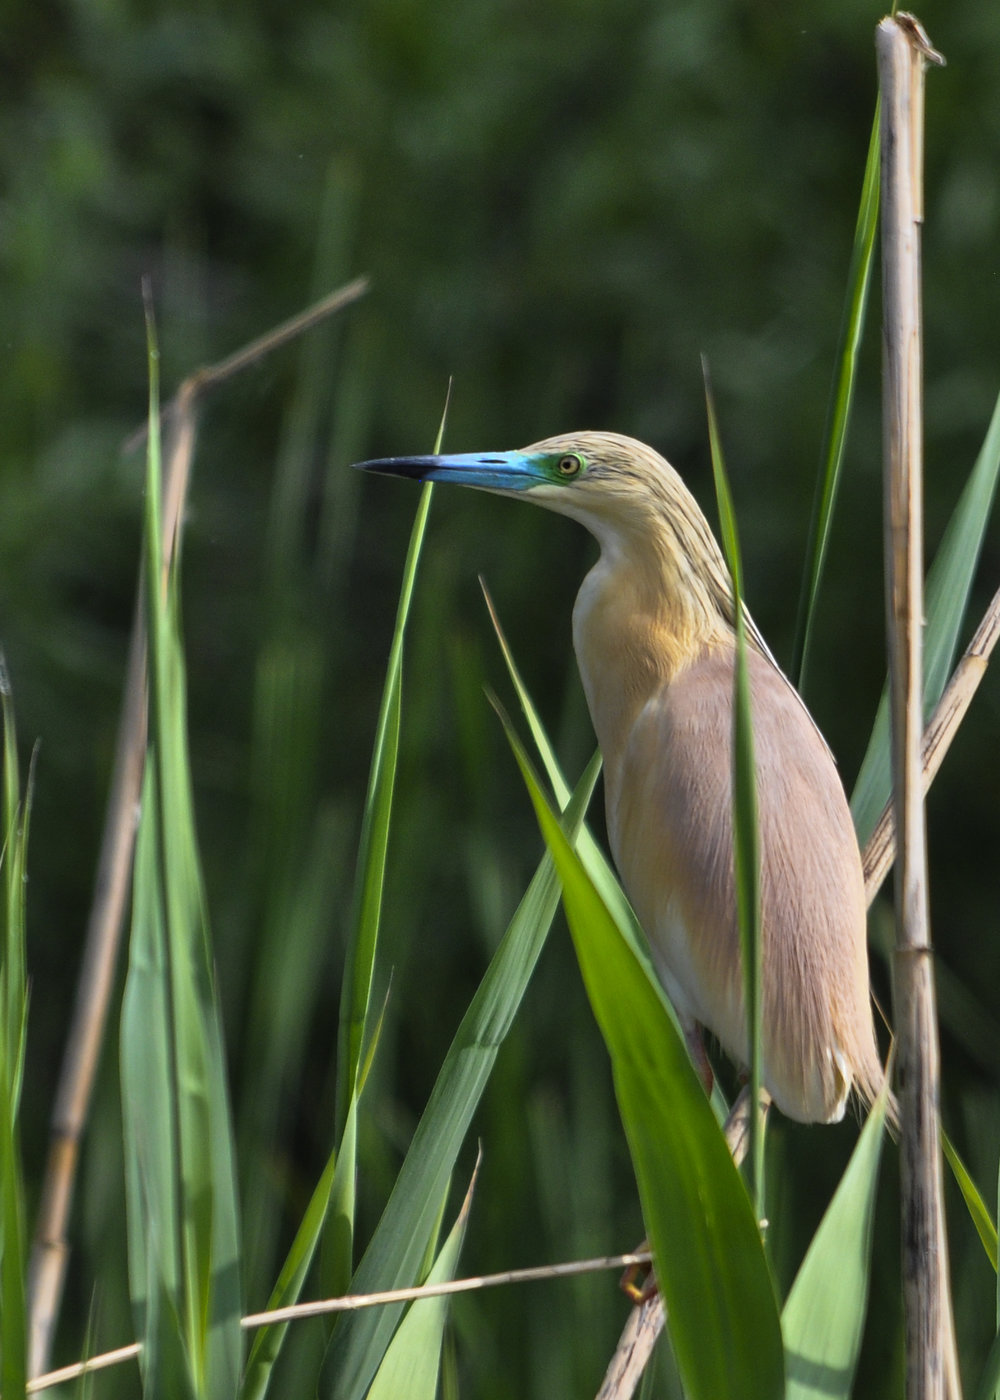 A squacco heron in the Danube Delta (Nikon D90, with Sigma 150 to 500mm. 1/800th sec at f9)